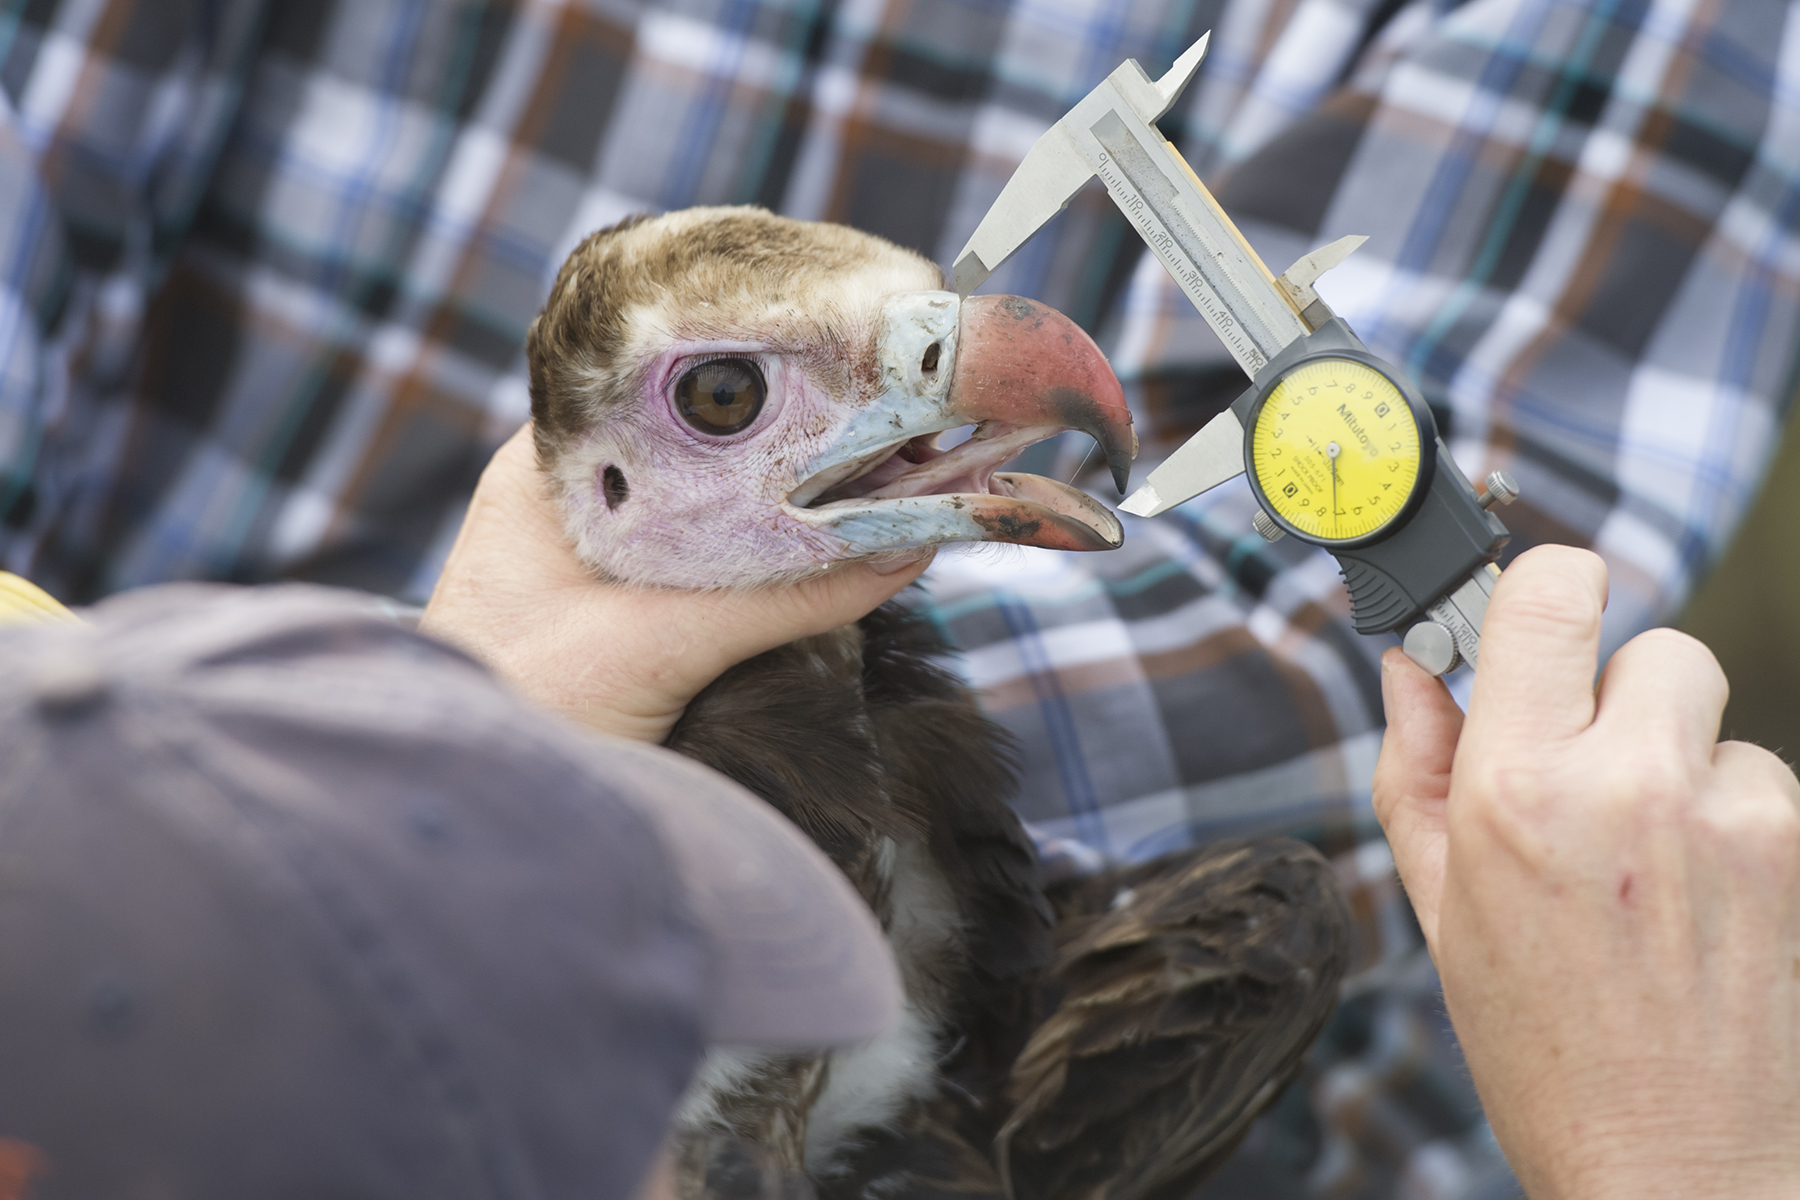 a scientists hand holds the head of a beautiful white headed vulture with pink face, blue lips, and red bill. The scientists other hand holds a caliper and measures the length of the bill